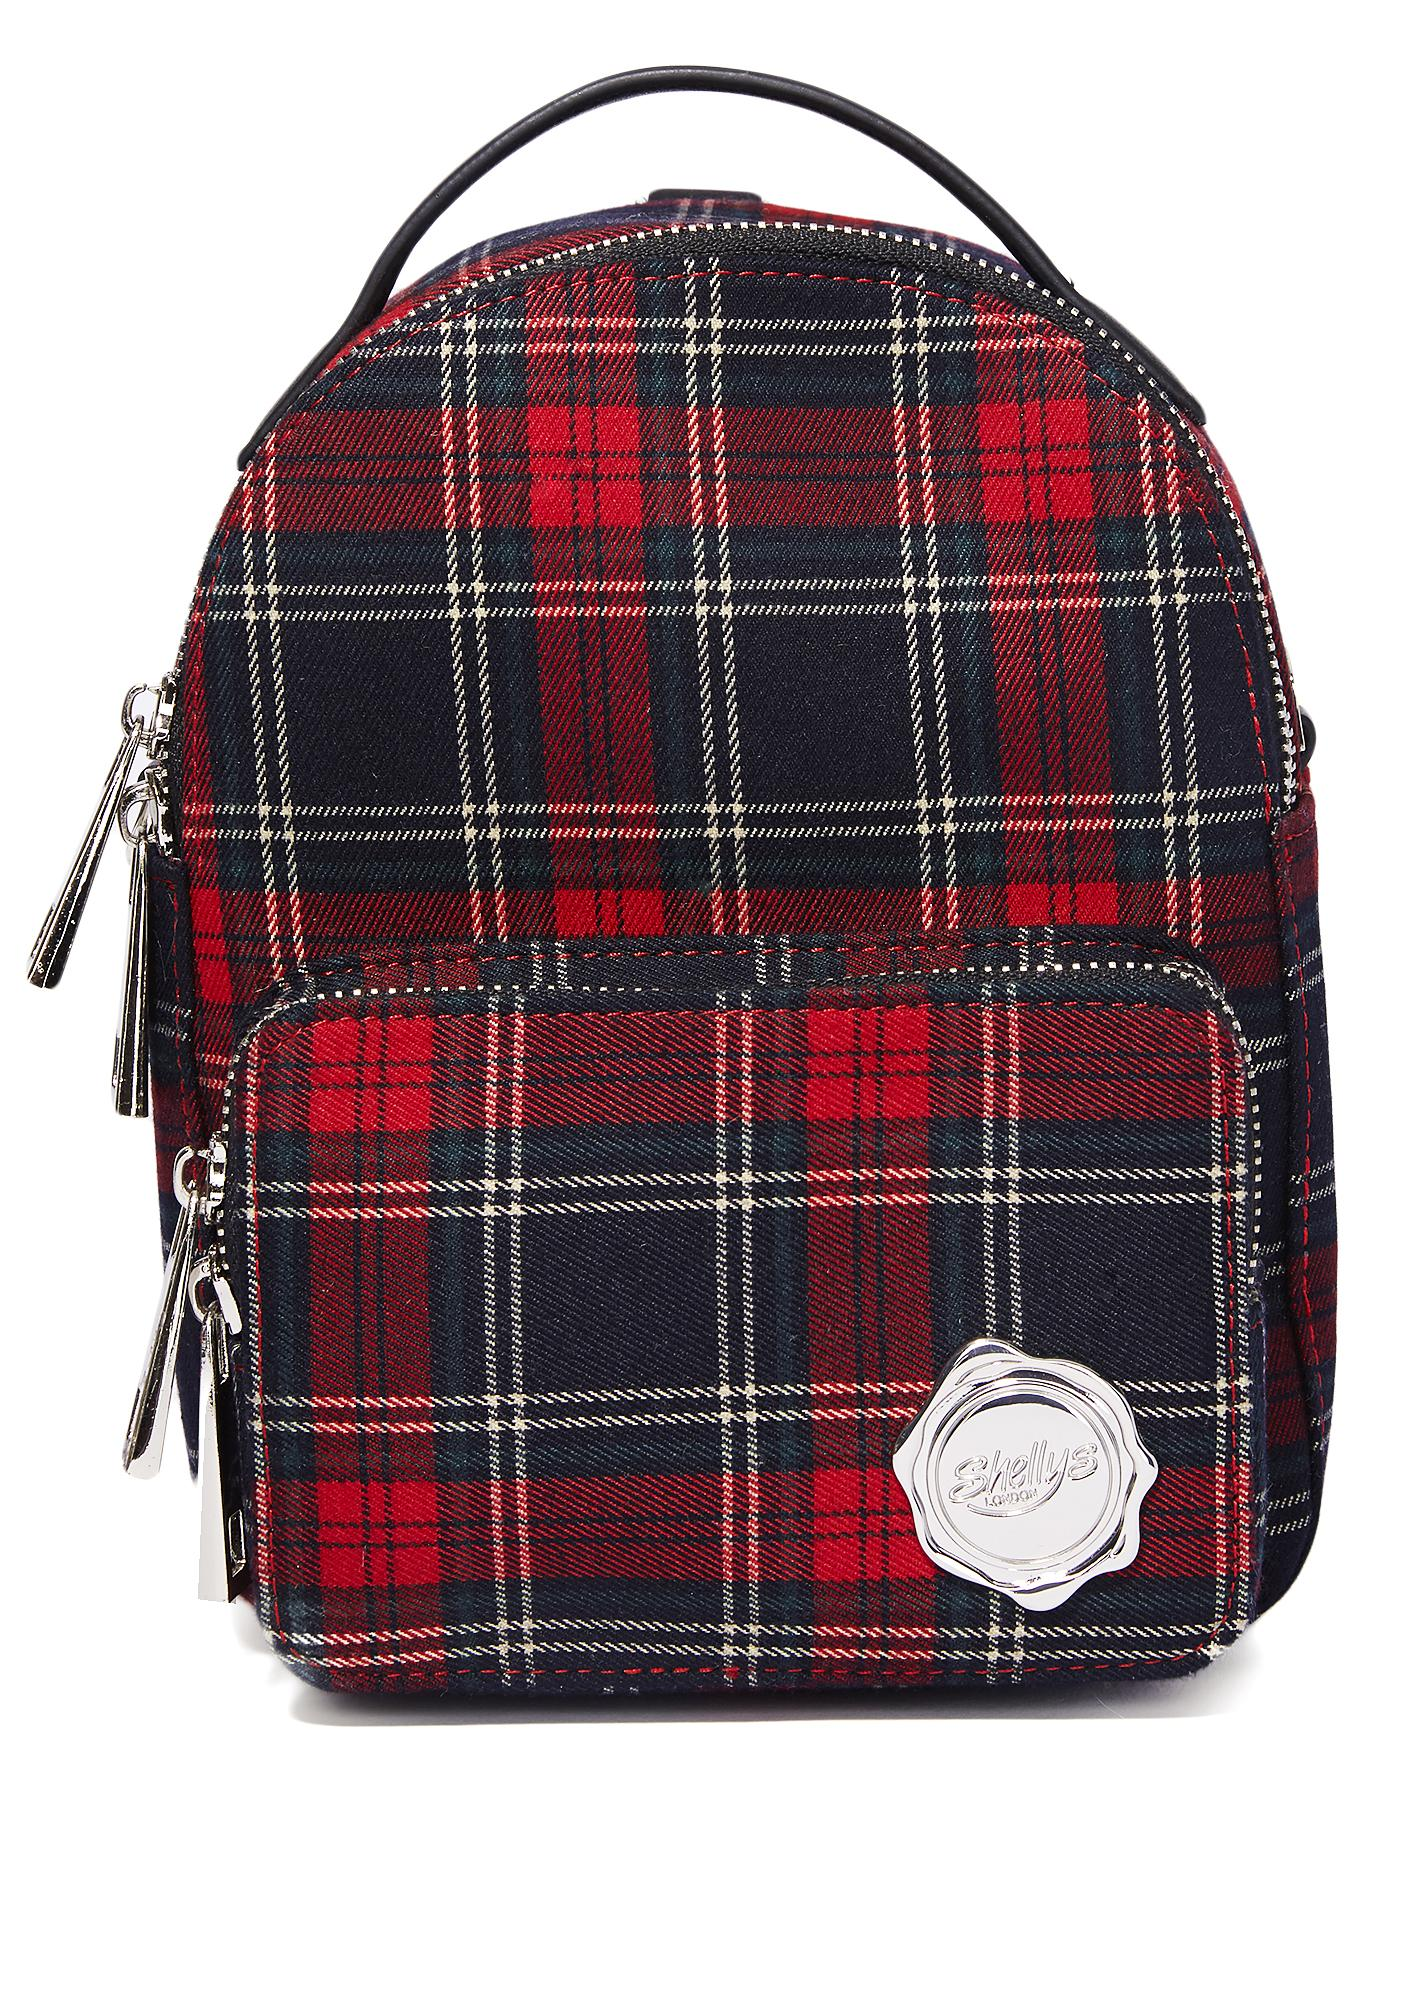 Shellys London Plaid Cooper Mini Backpack